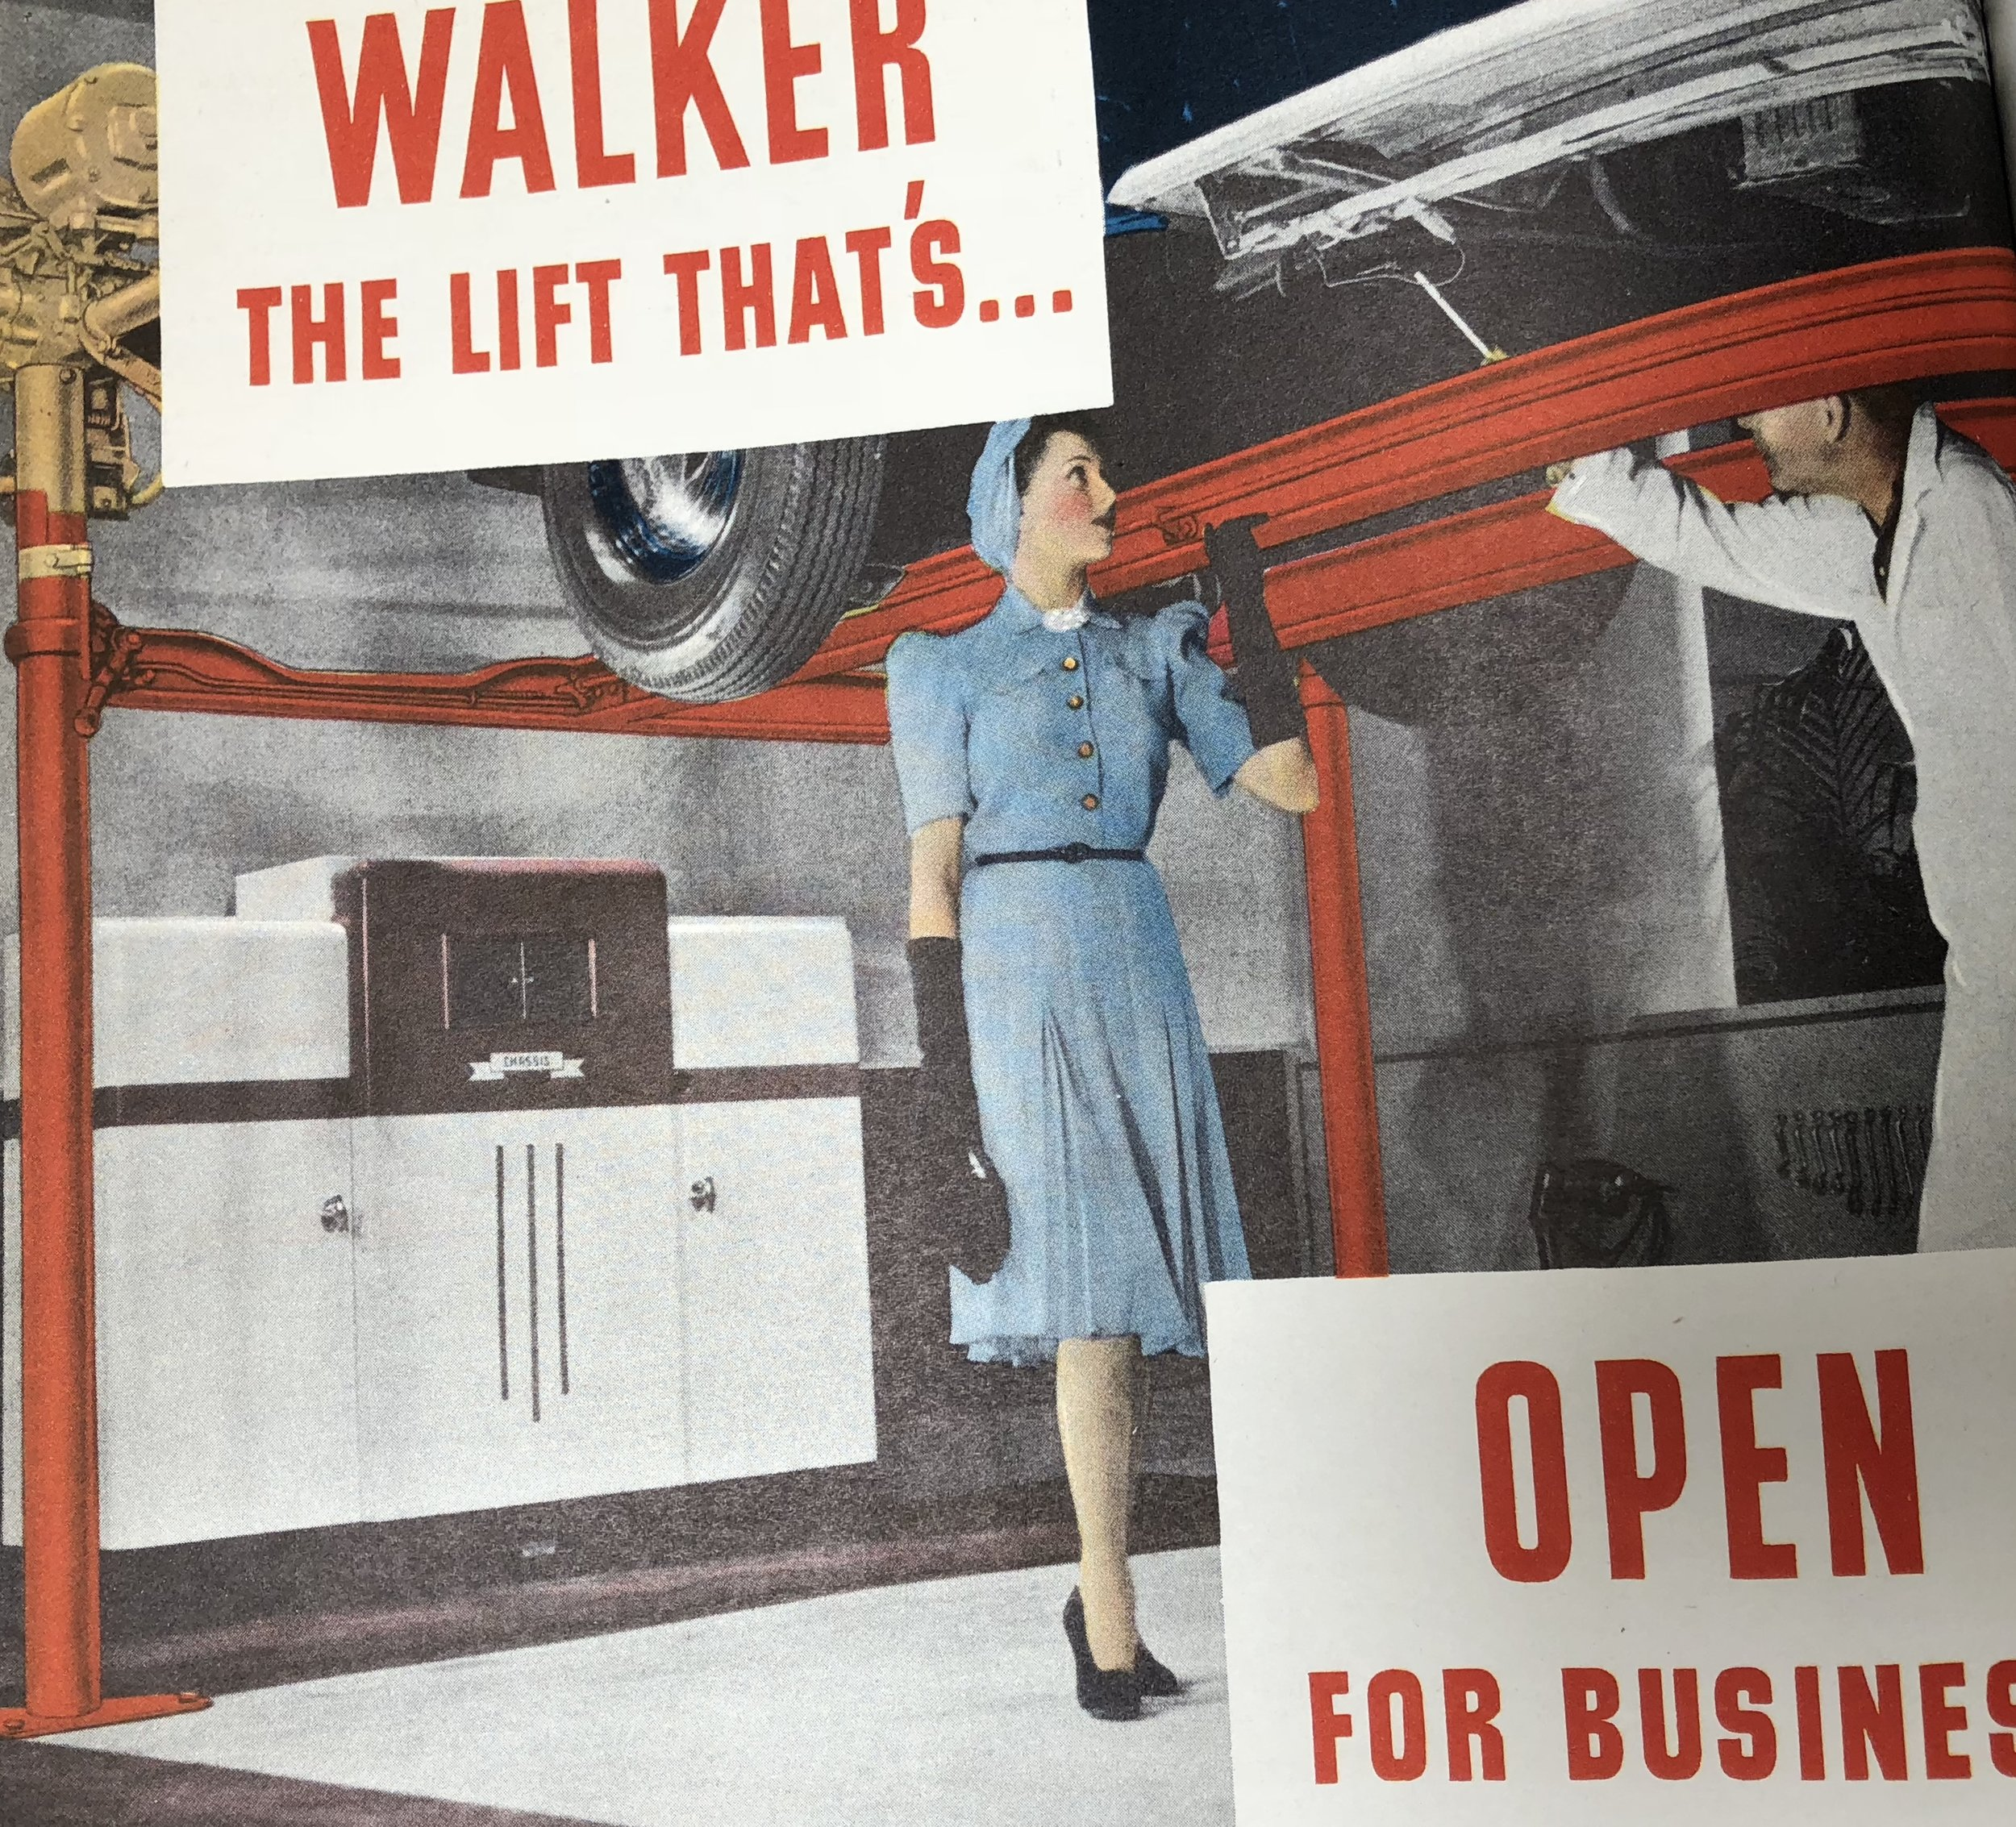 Walker ad with a 1939 Balcrank cabinet